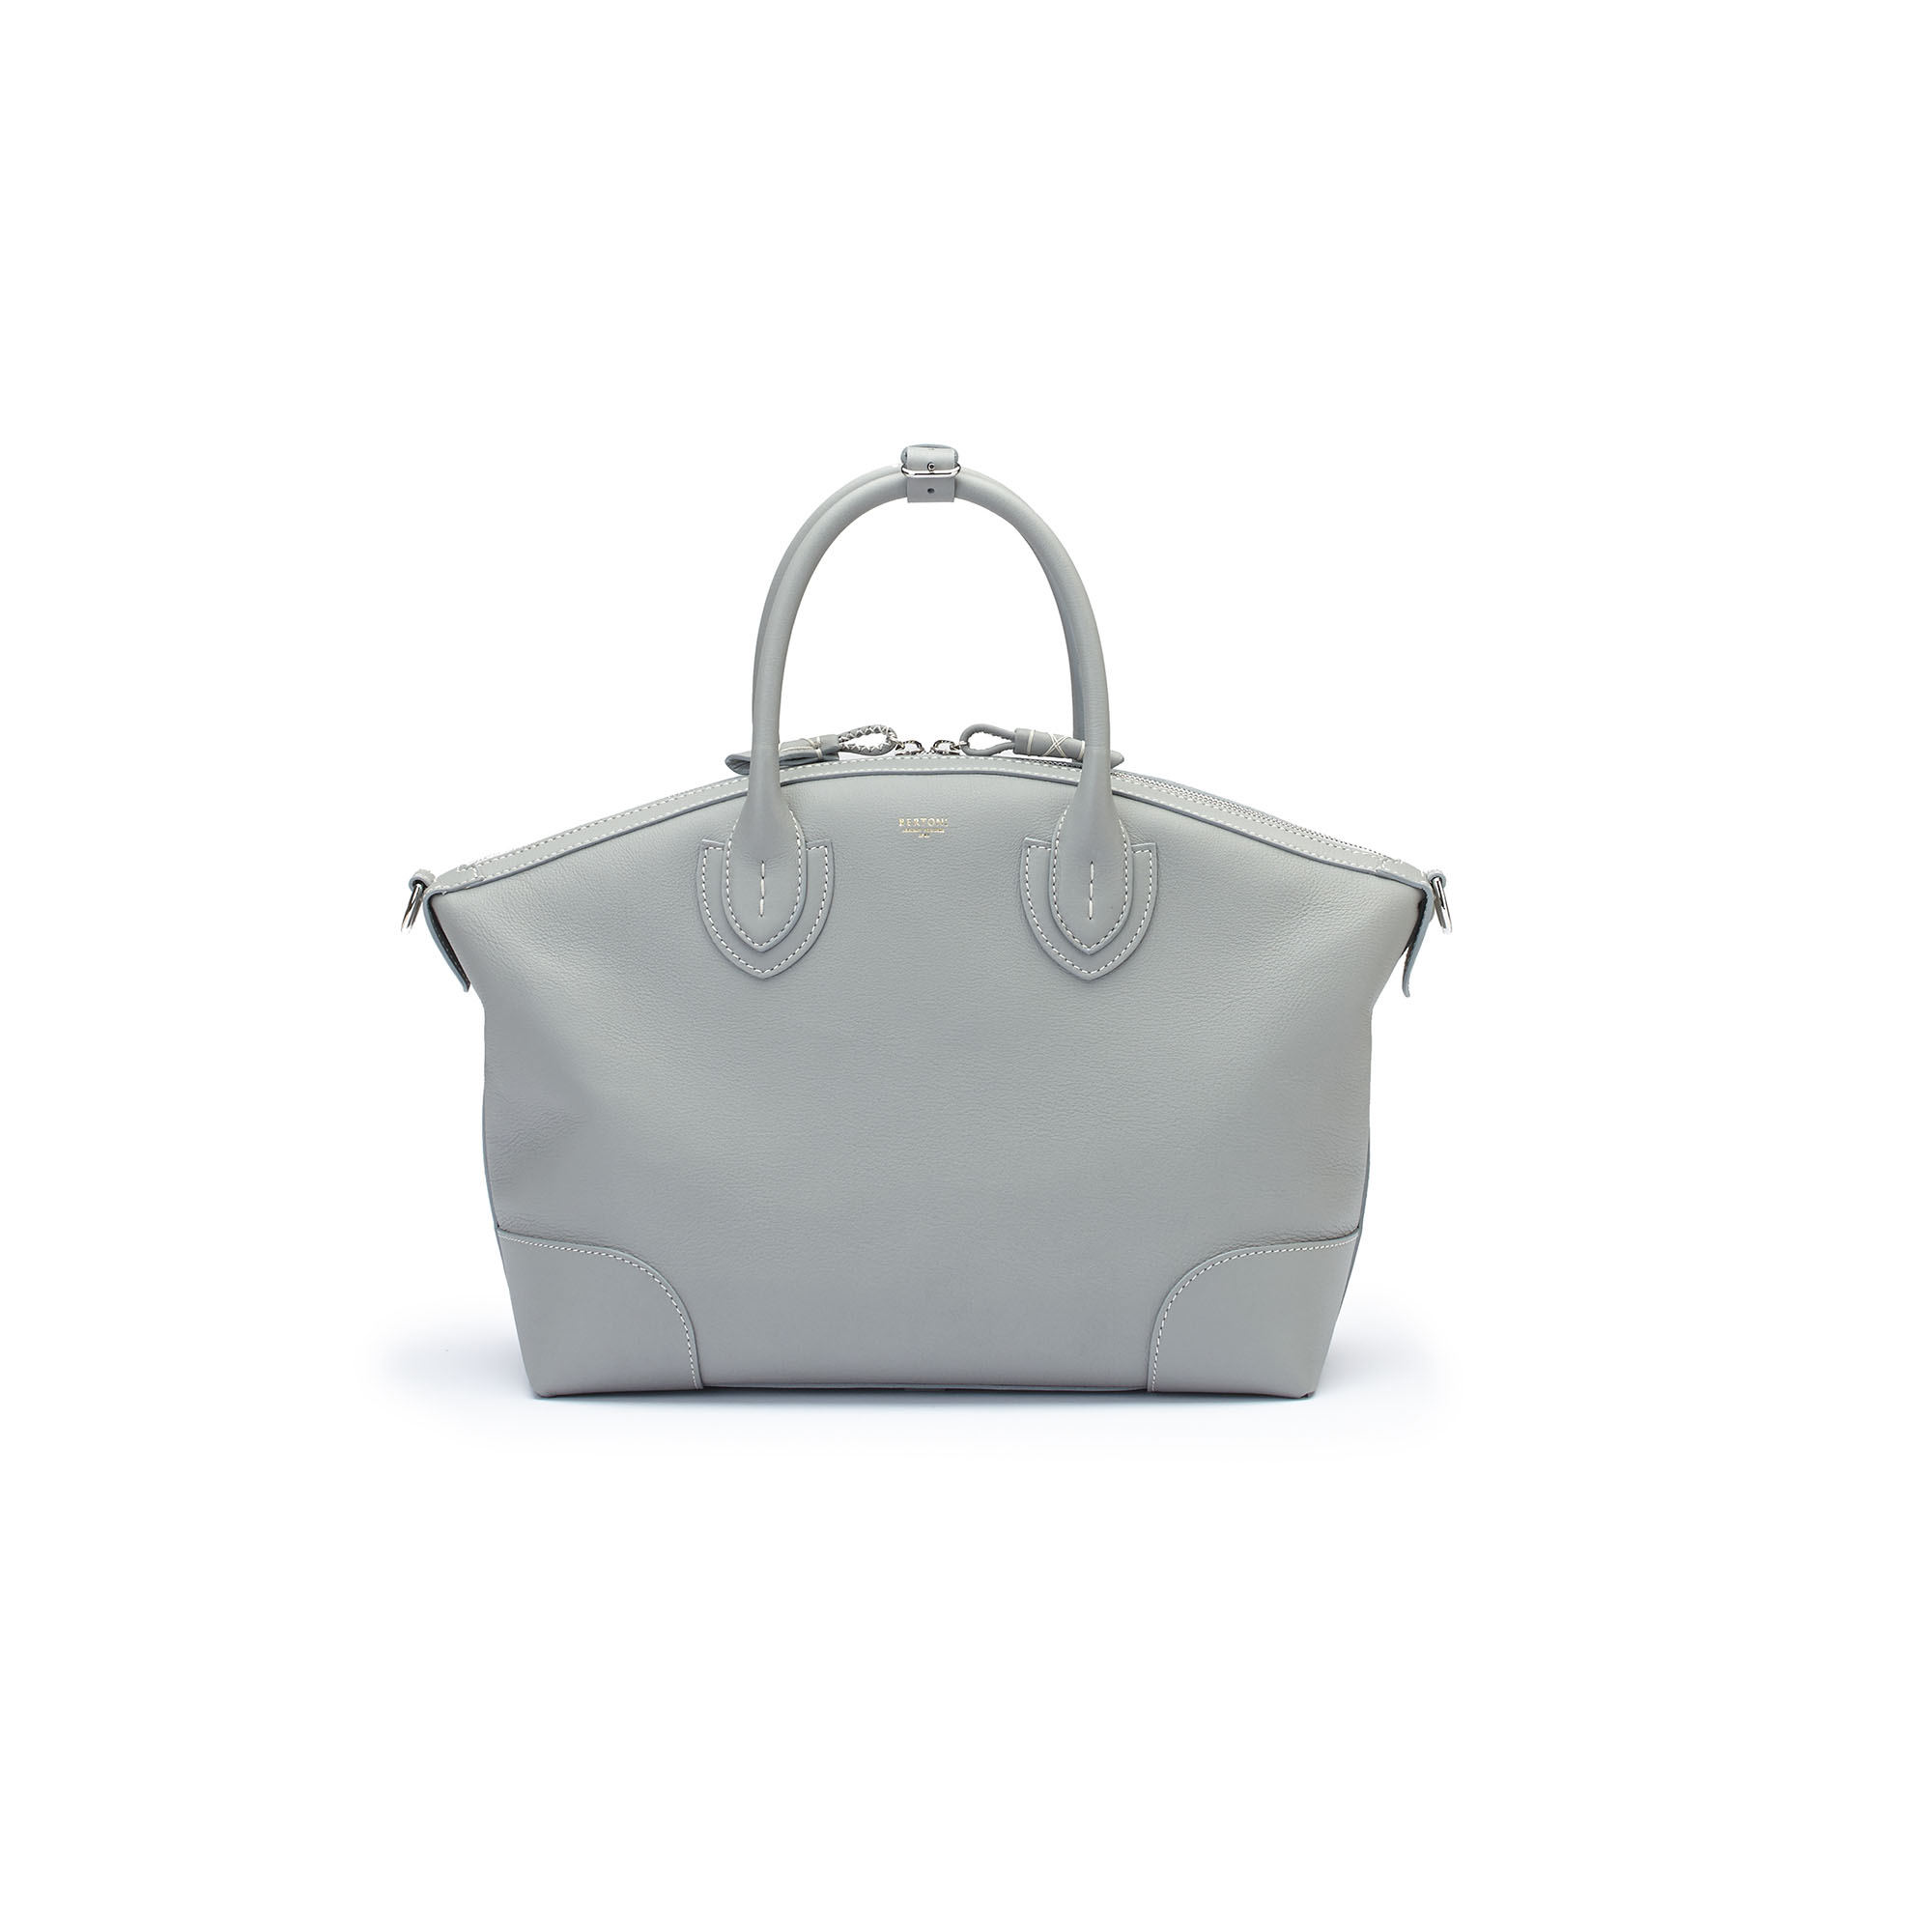 The sage soft calf Anija bag by Bertoni 1949 01